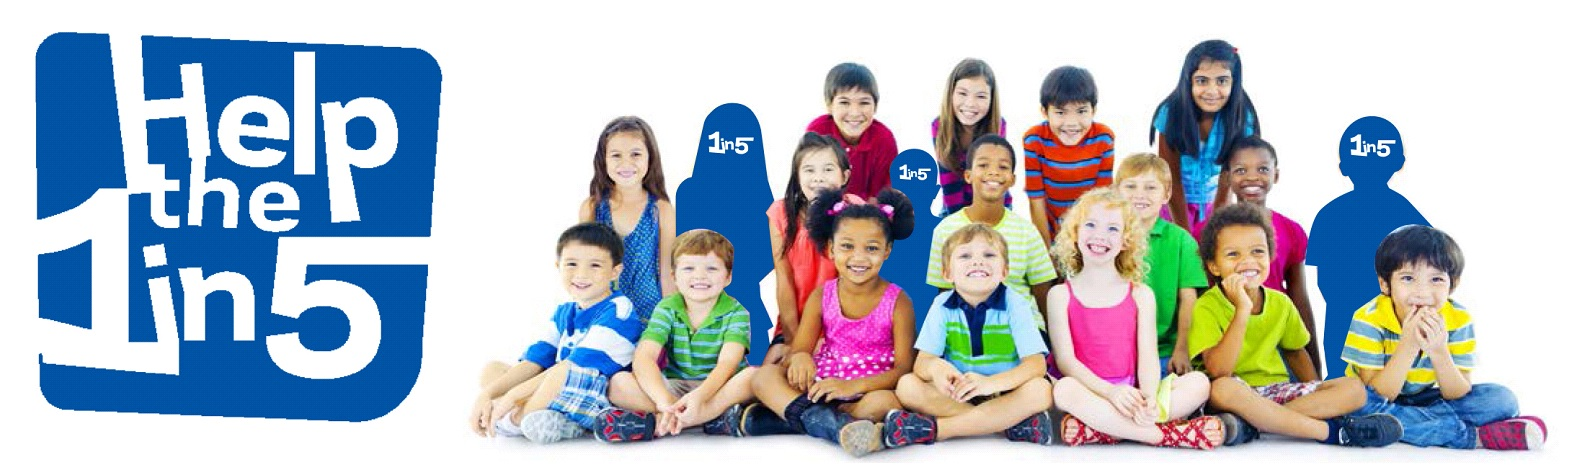 Help the 1 in 5 picture of group of children sitting and smiling. Some children just blue with 1 in 5 written.